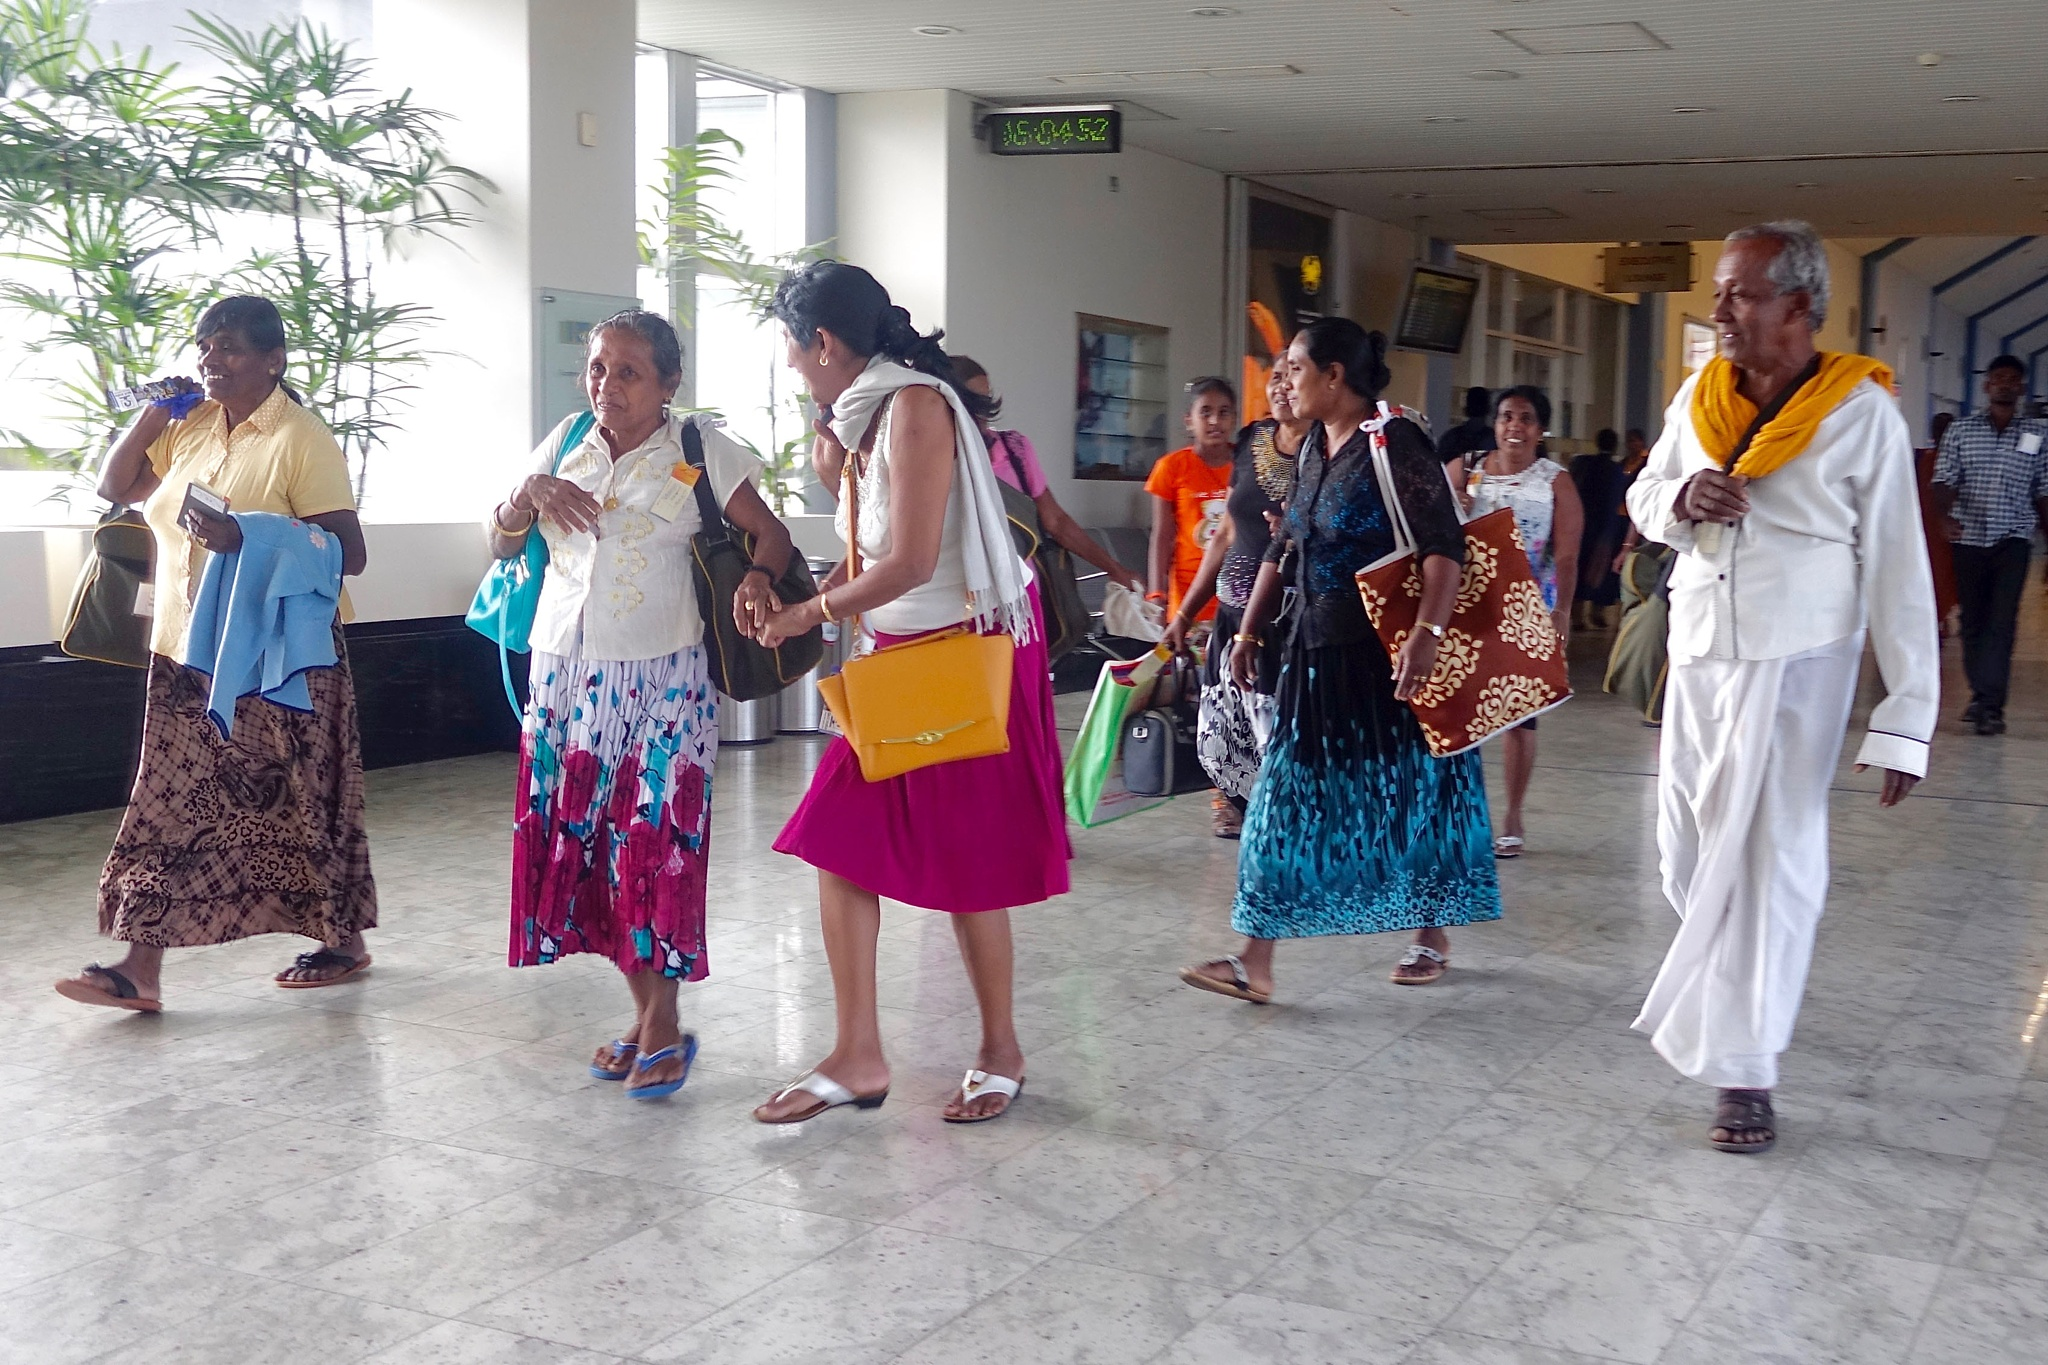 People at the airport in Colombo, Sri Lanka by Erwin Widmer